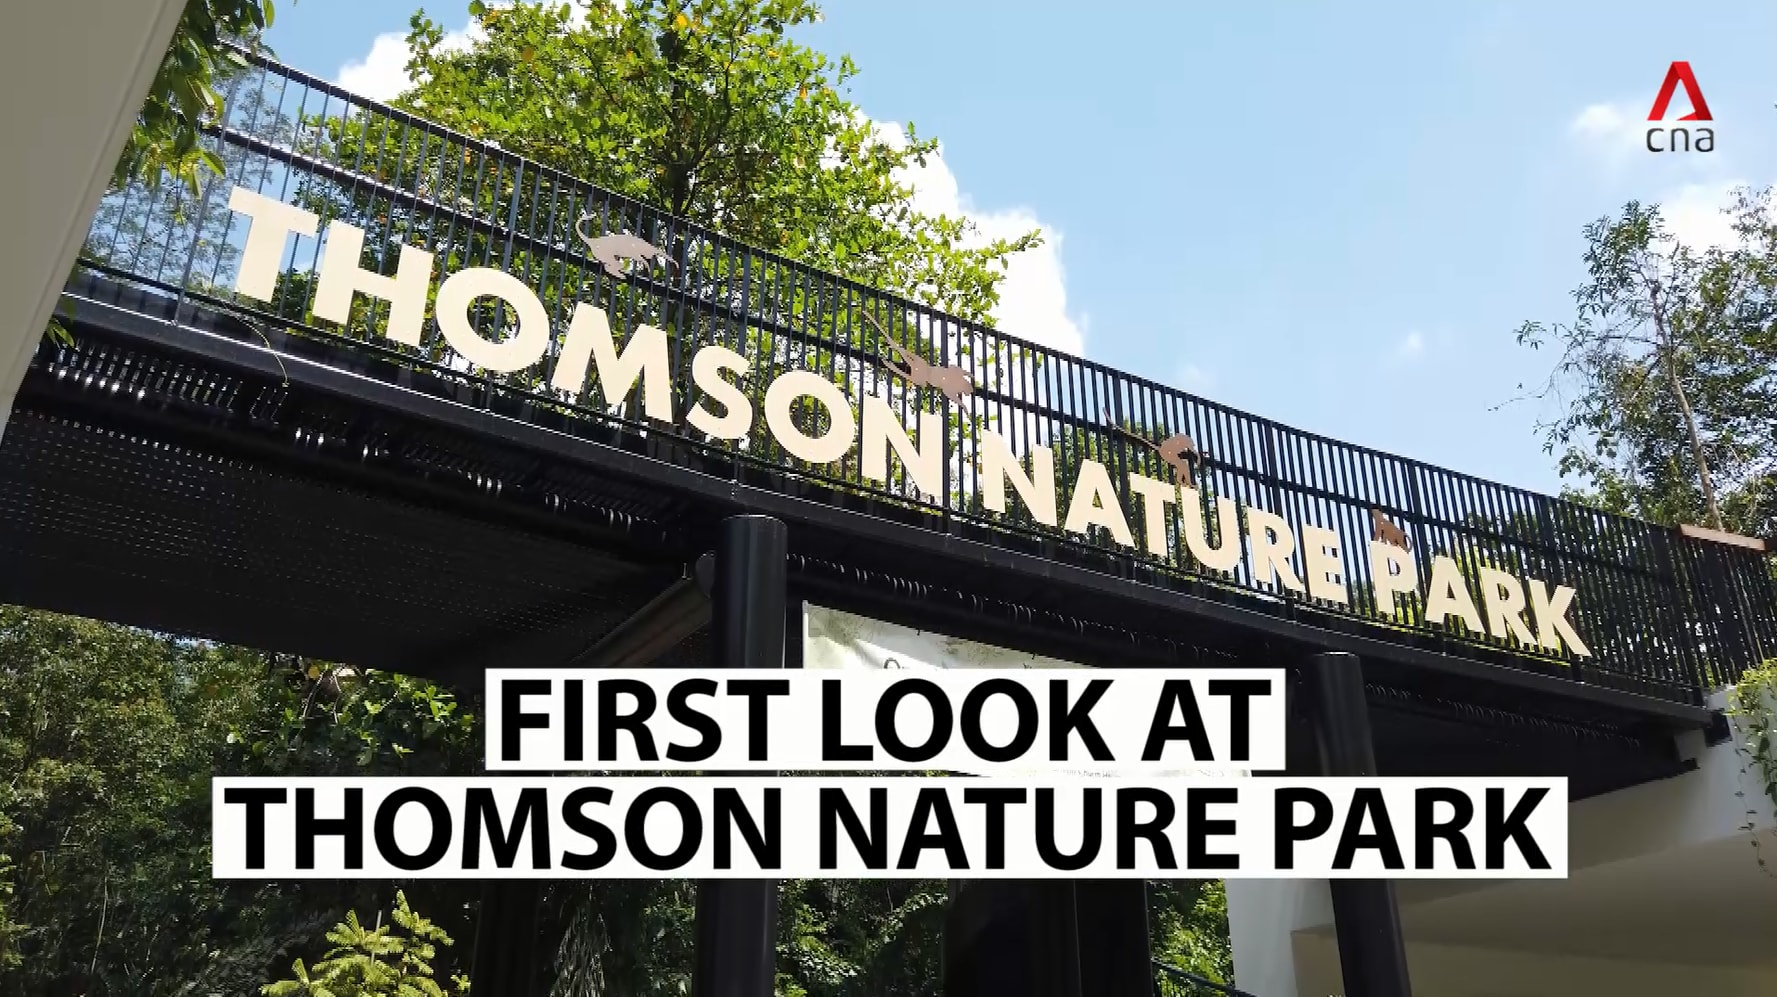 First look at Thomson Nature Park - and the ruins of an old Singapore kampung